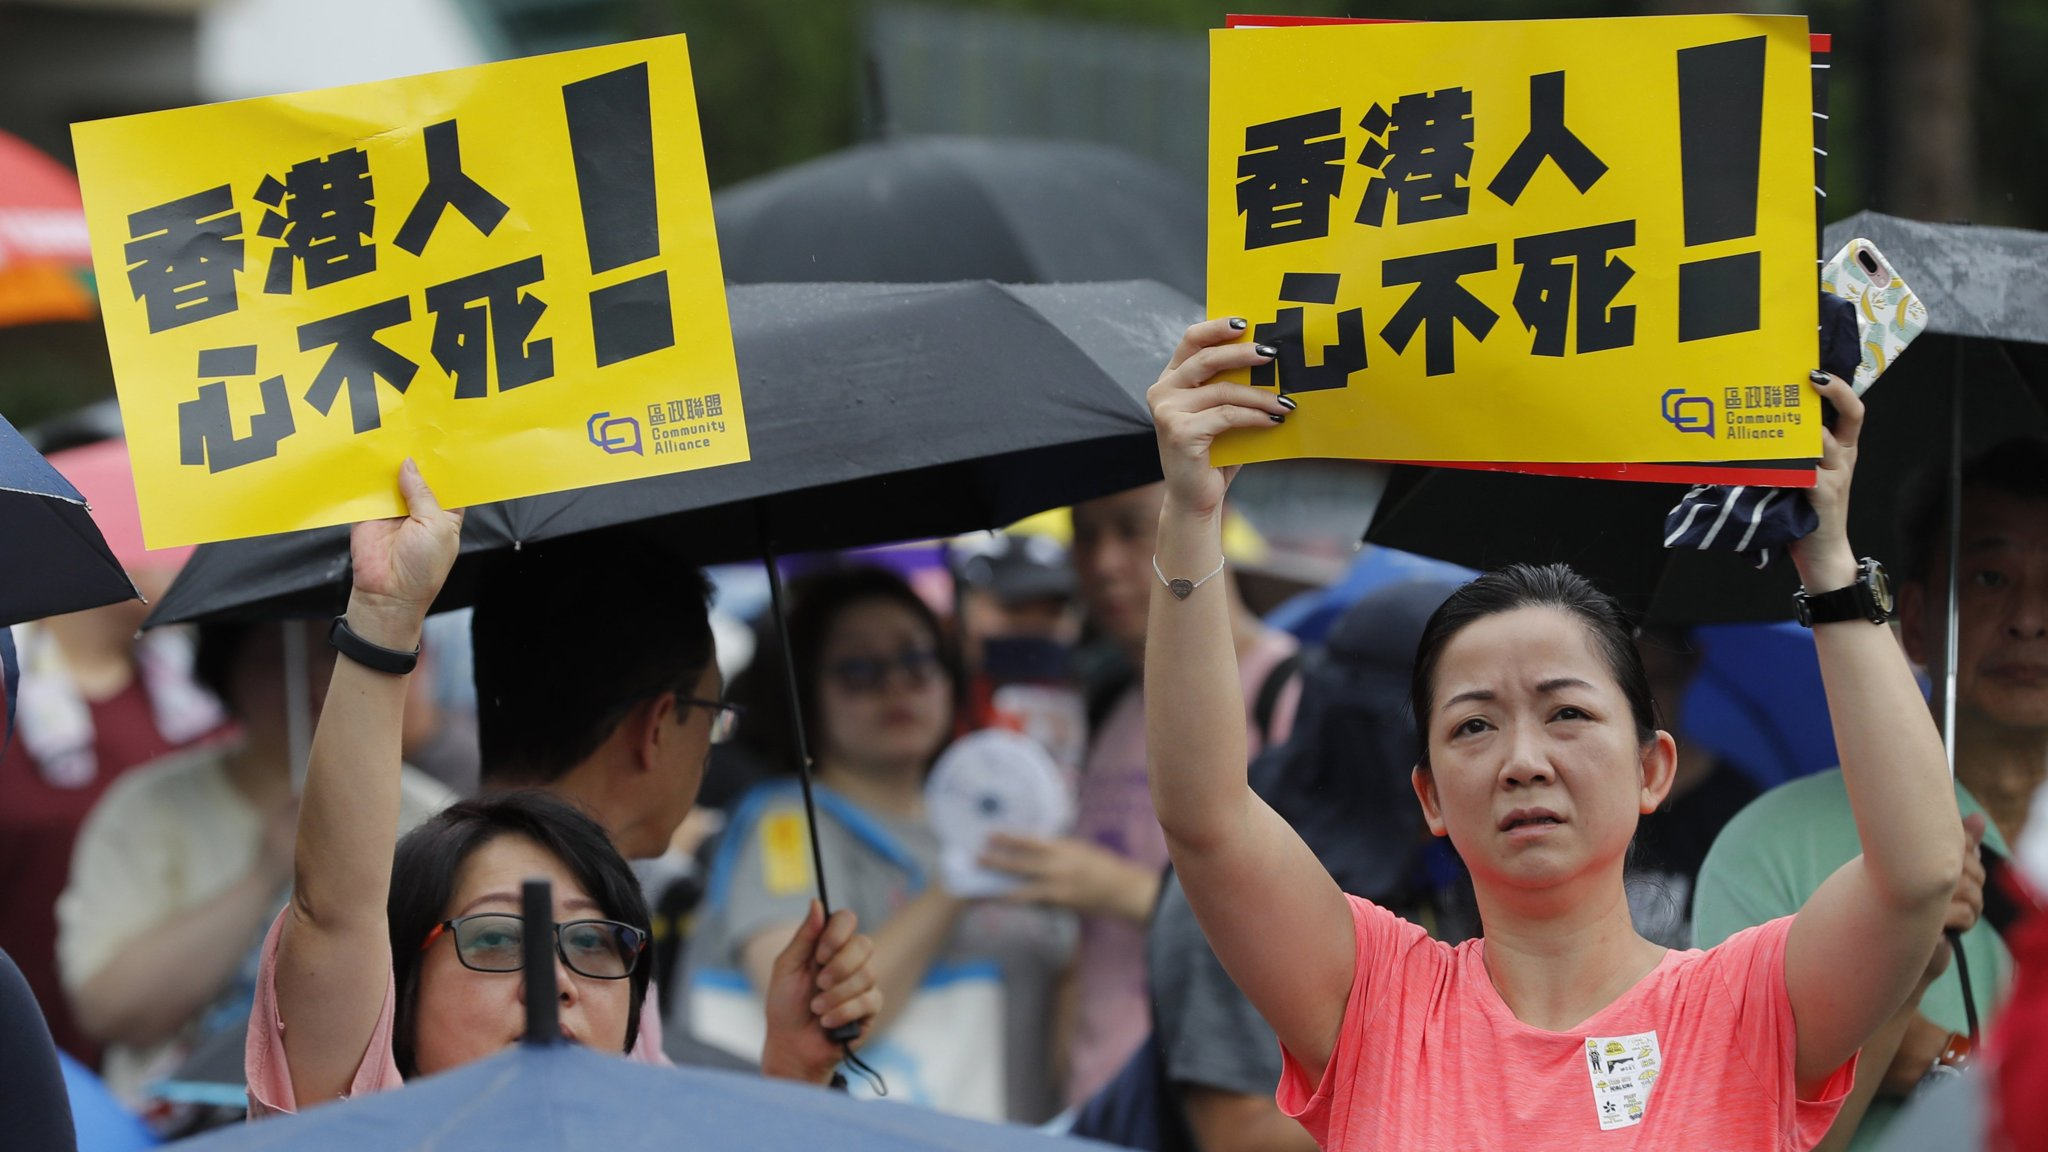 Hong Kong protesters defy Beijing's show of force